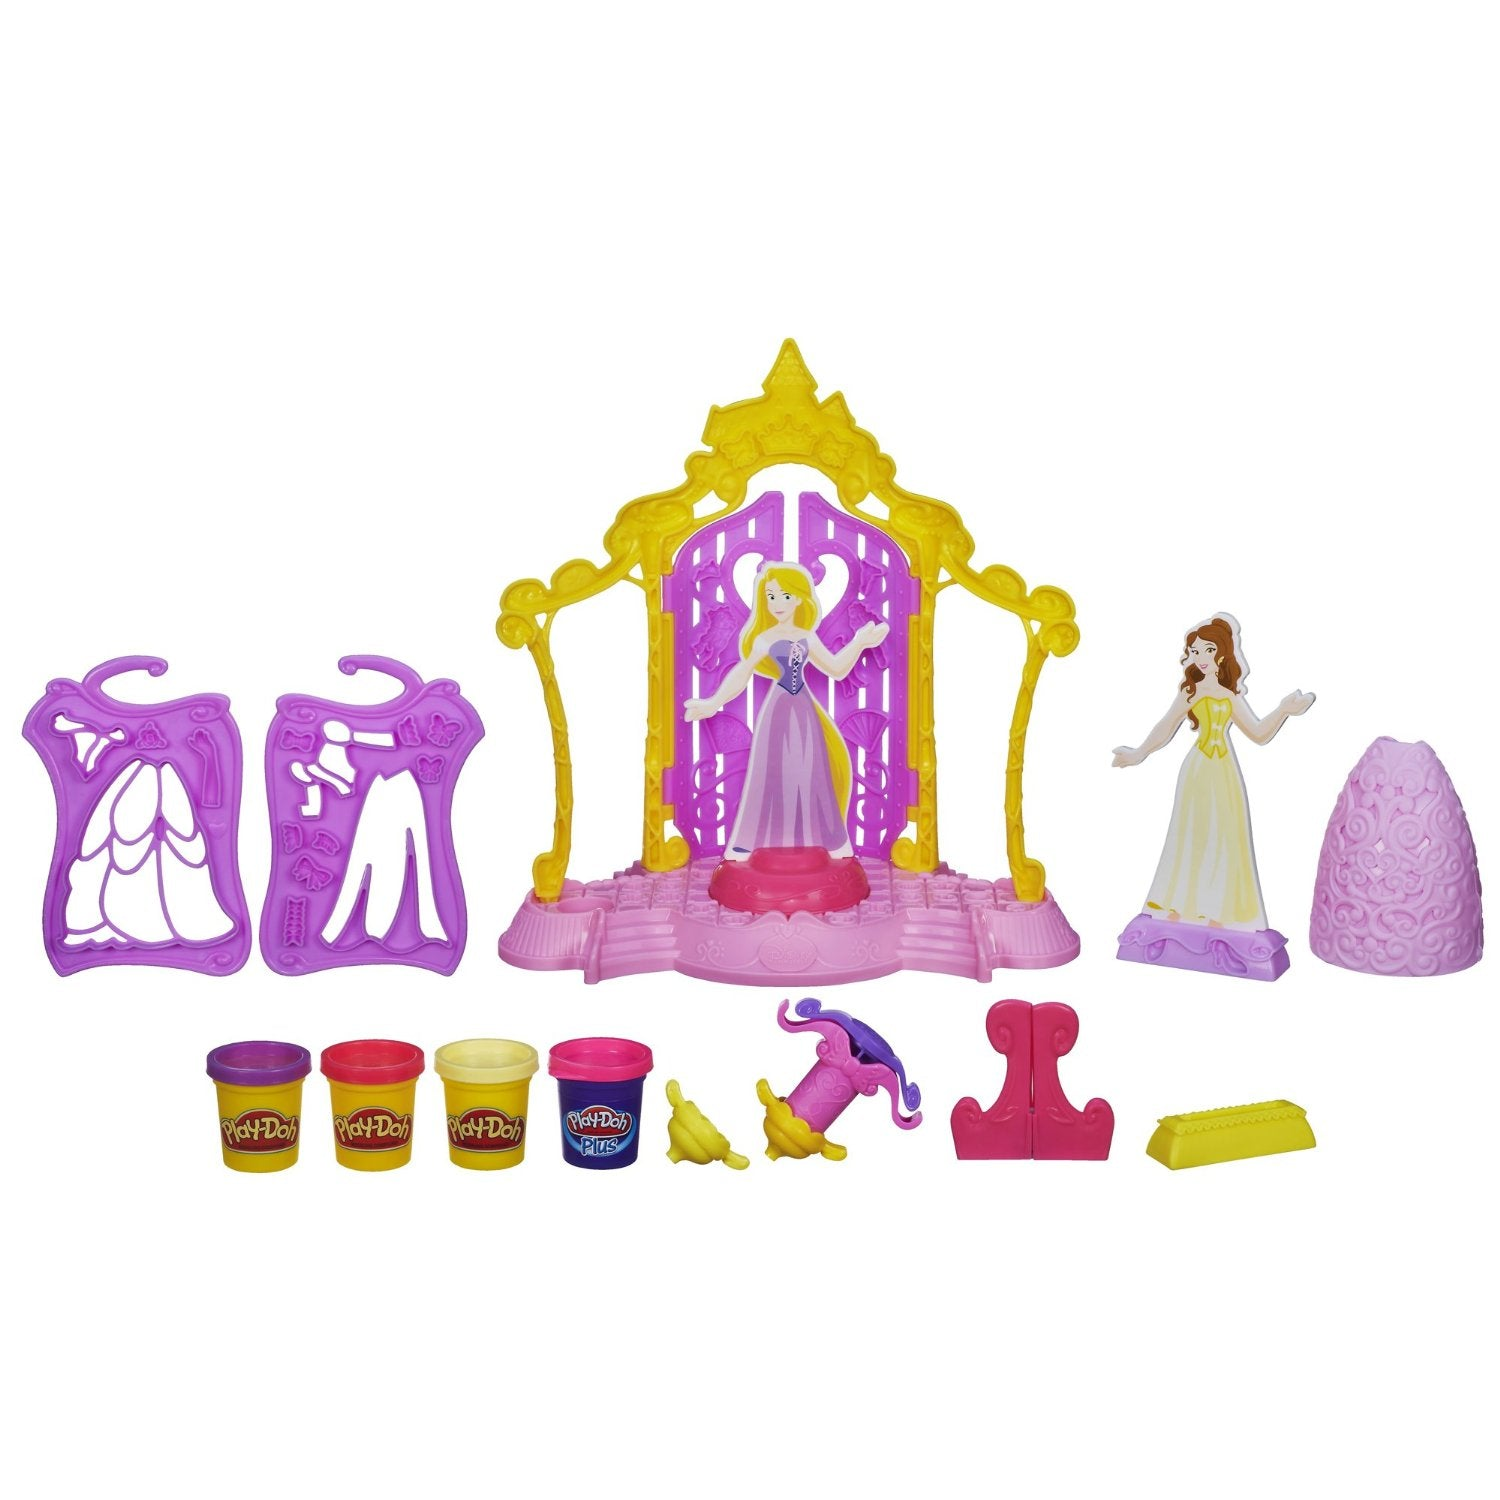 Disney Princess Toys - Design-a-Dress Play-Doch™ Boutique Set